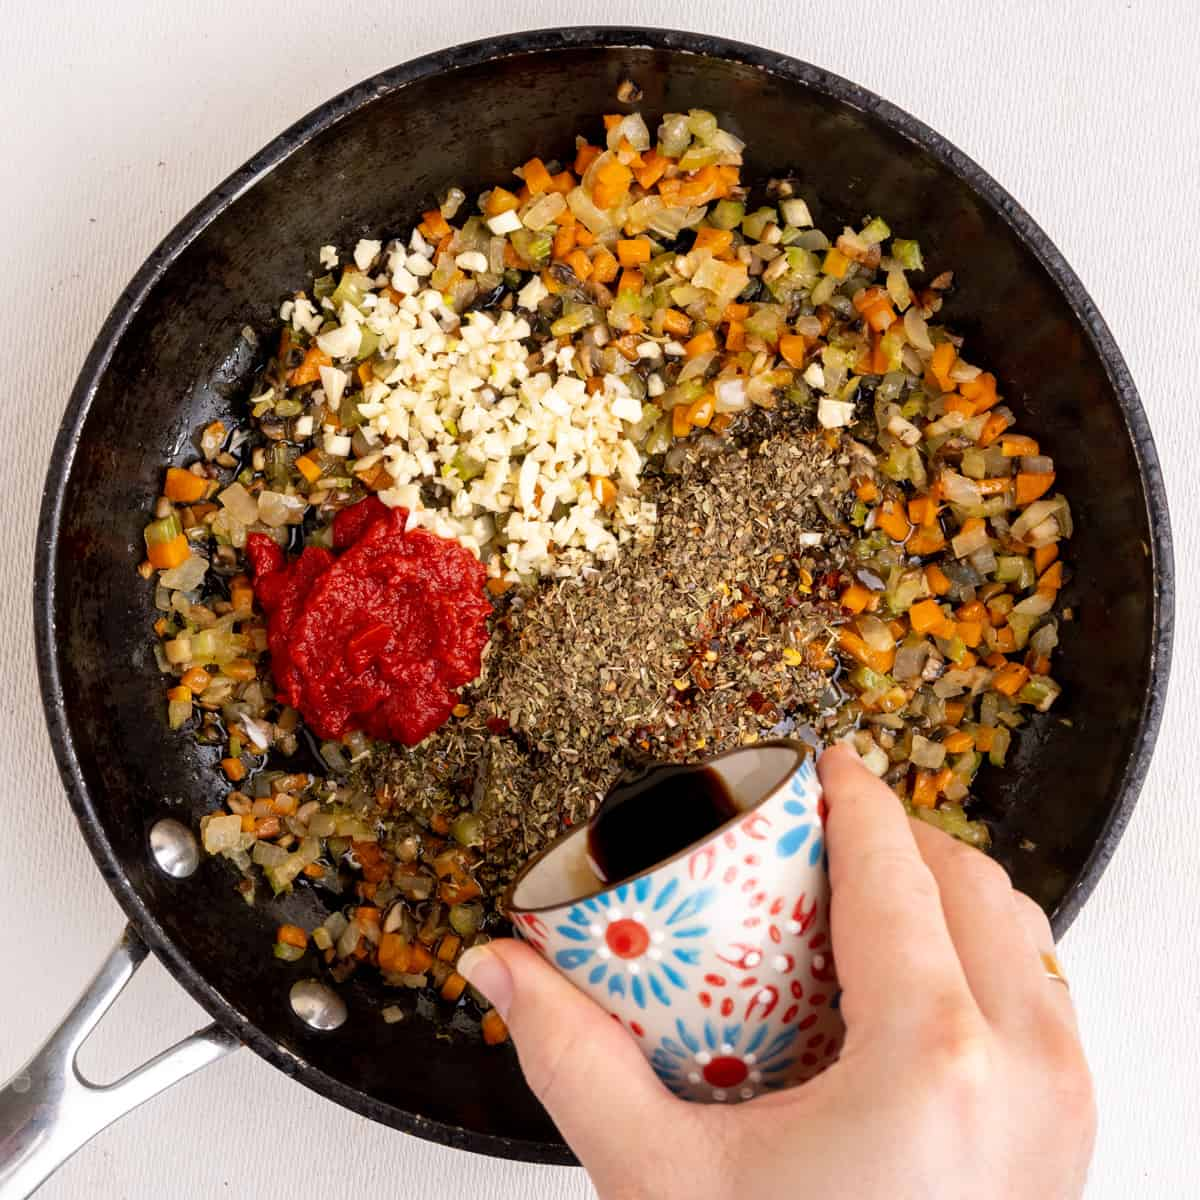 Garlic, dried herbs, tomato puree and other ingredients are added to the sauteed vegetables.